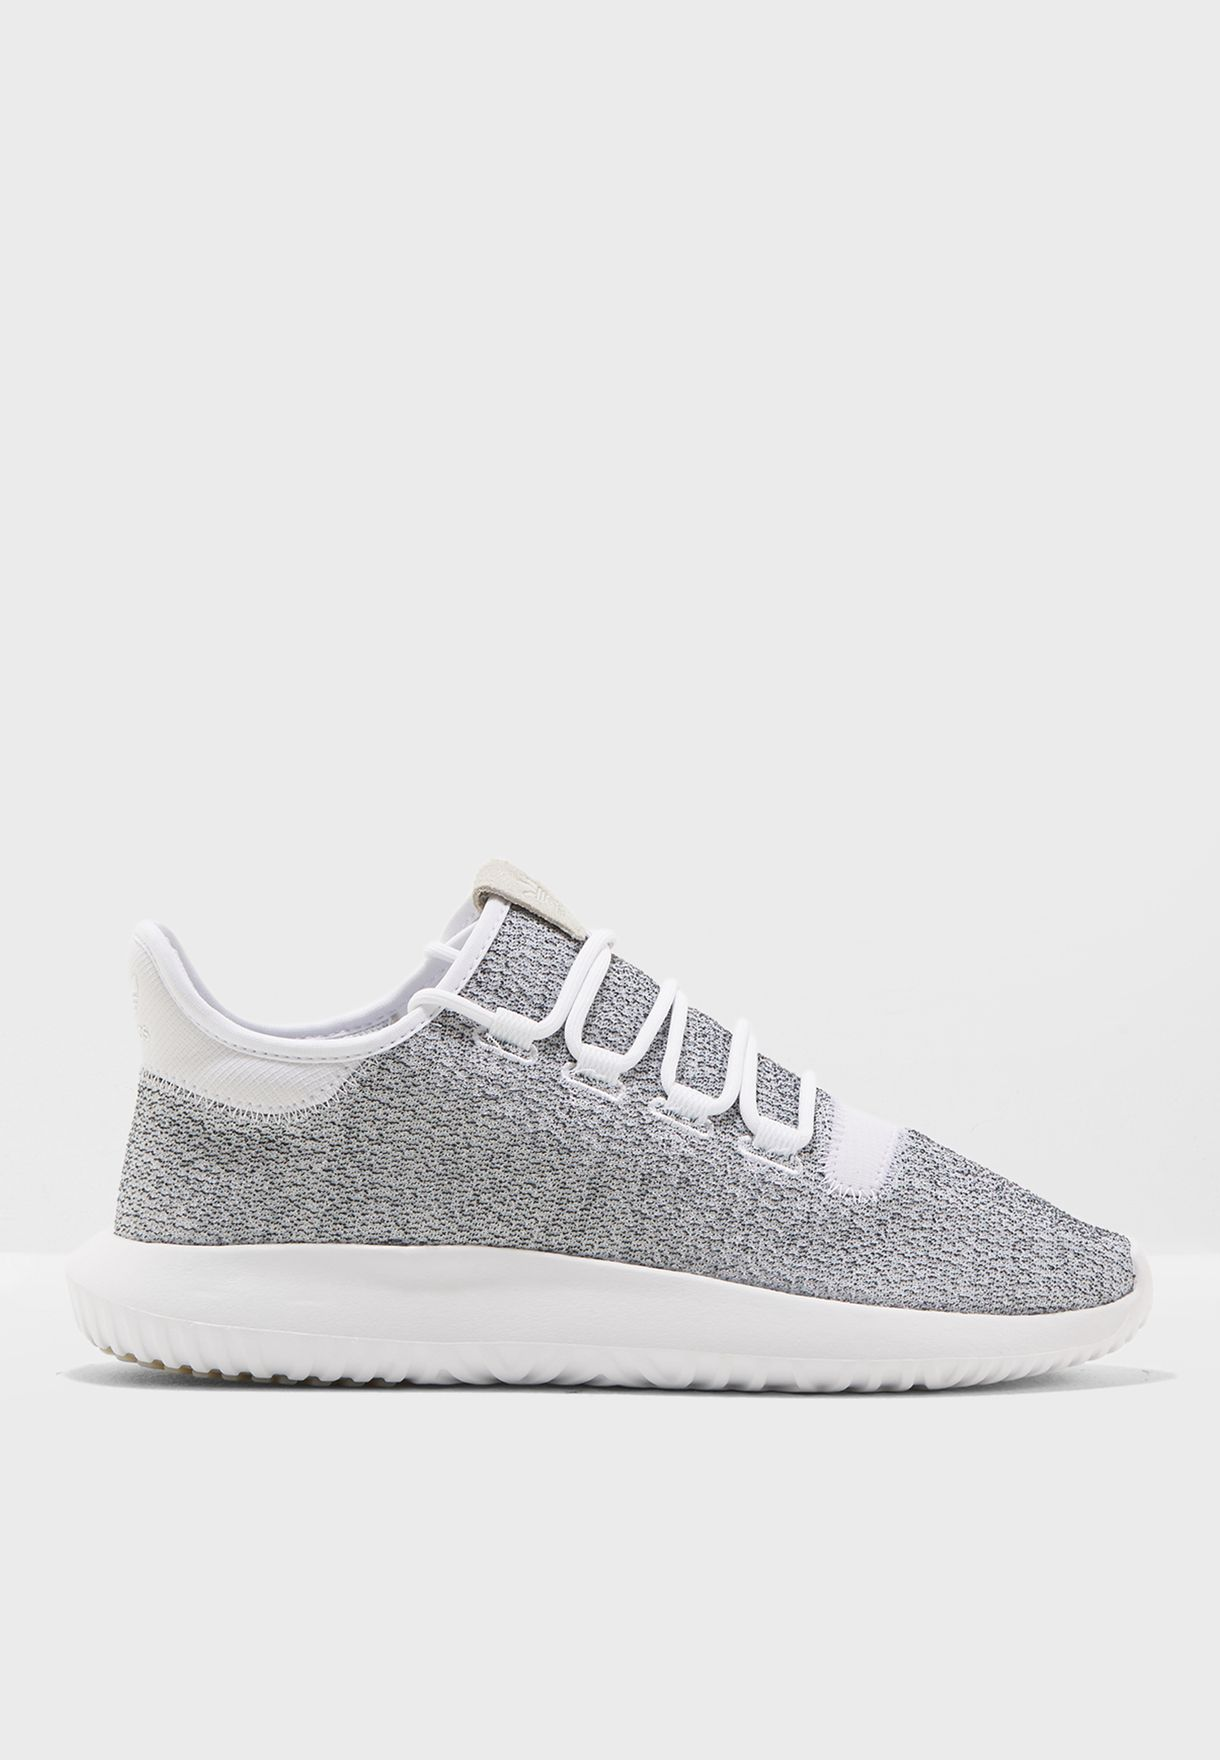 1506125a2dd Shop adidas Originals monochrome Tubular Shadow CQ0928 for Men in ...